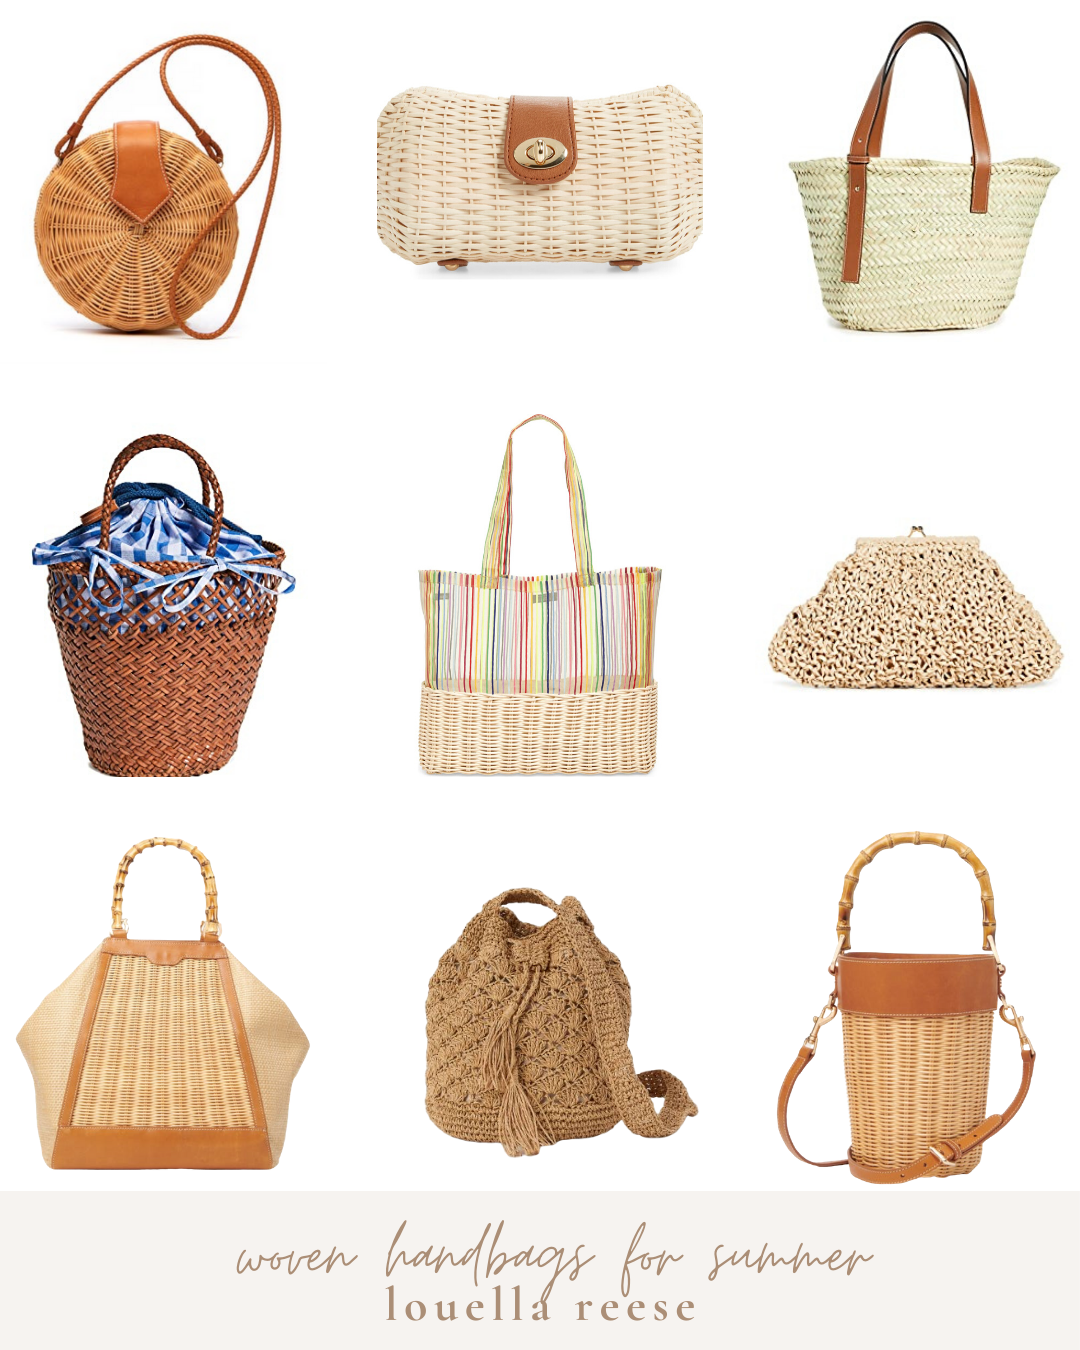 The Best Woven Bags for Summer 2020 | Straw, Wicker, and Woven Handbags | Louella Reese